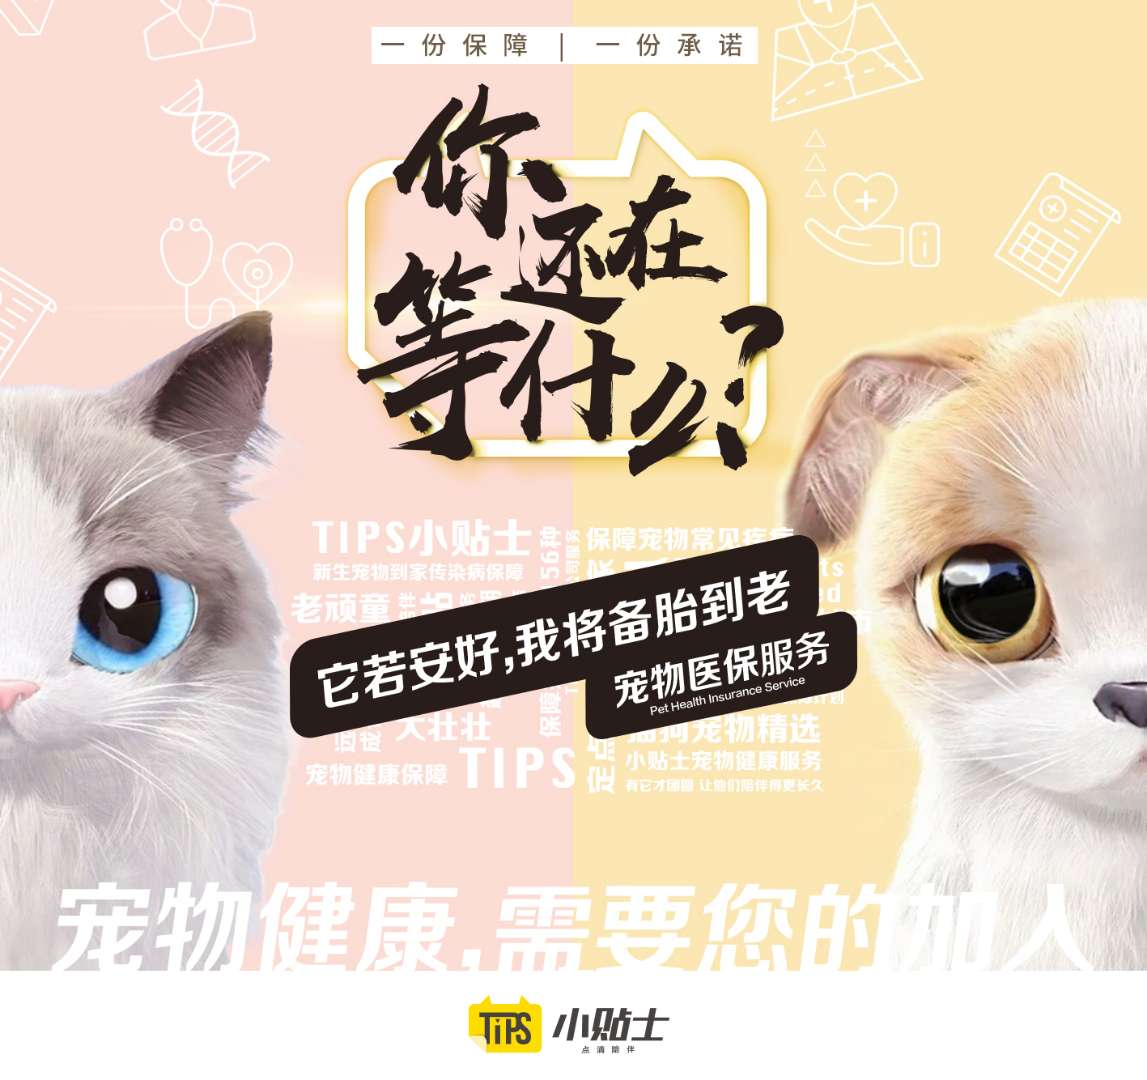 af82 iypetiv9789618 - Hundreds of billions of pet industry giants dystocia, this pet platform this year won Wu Shichun nod to invest-Sina.com